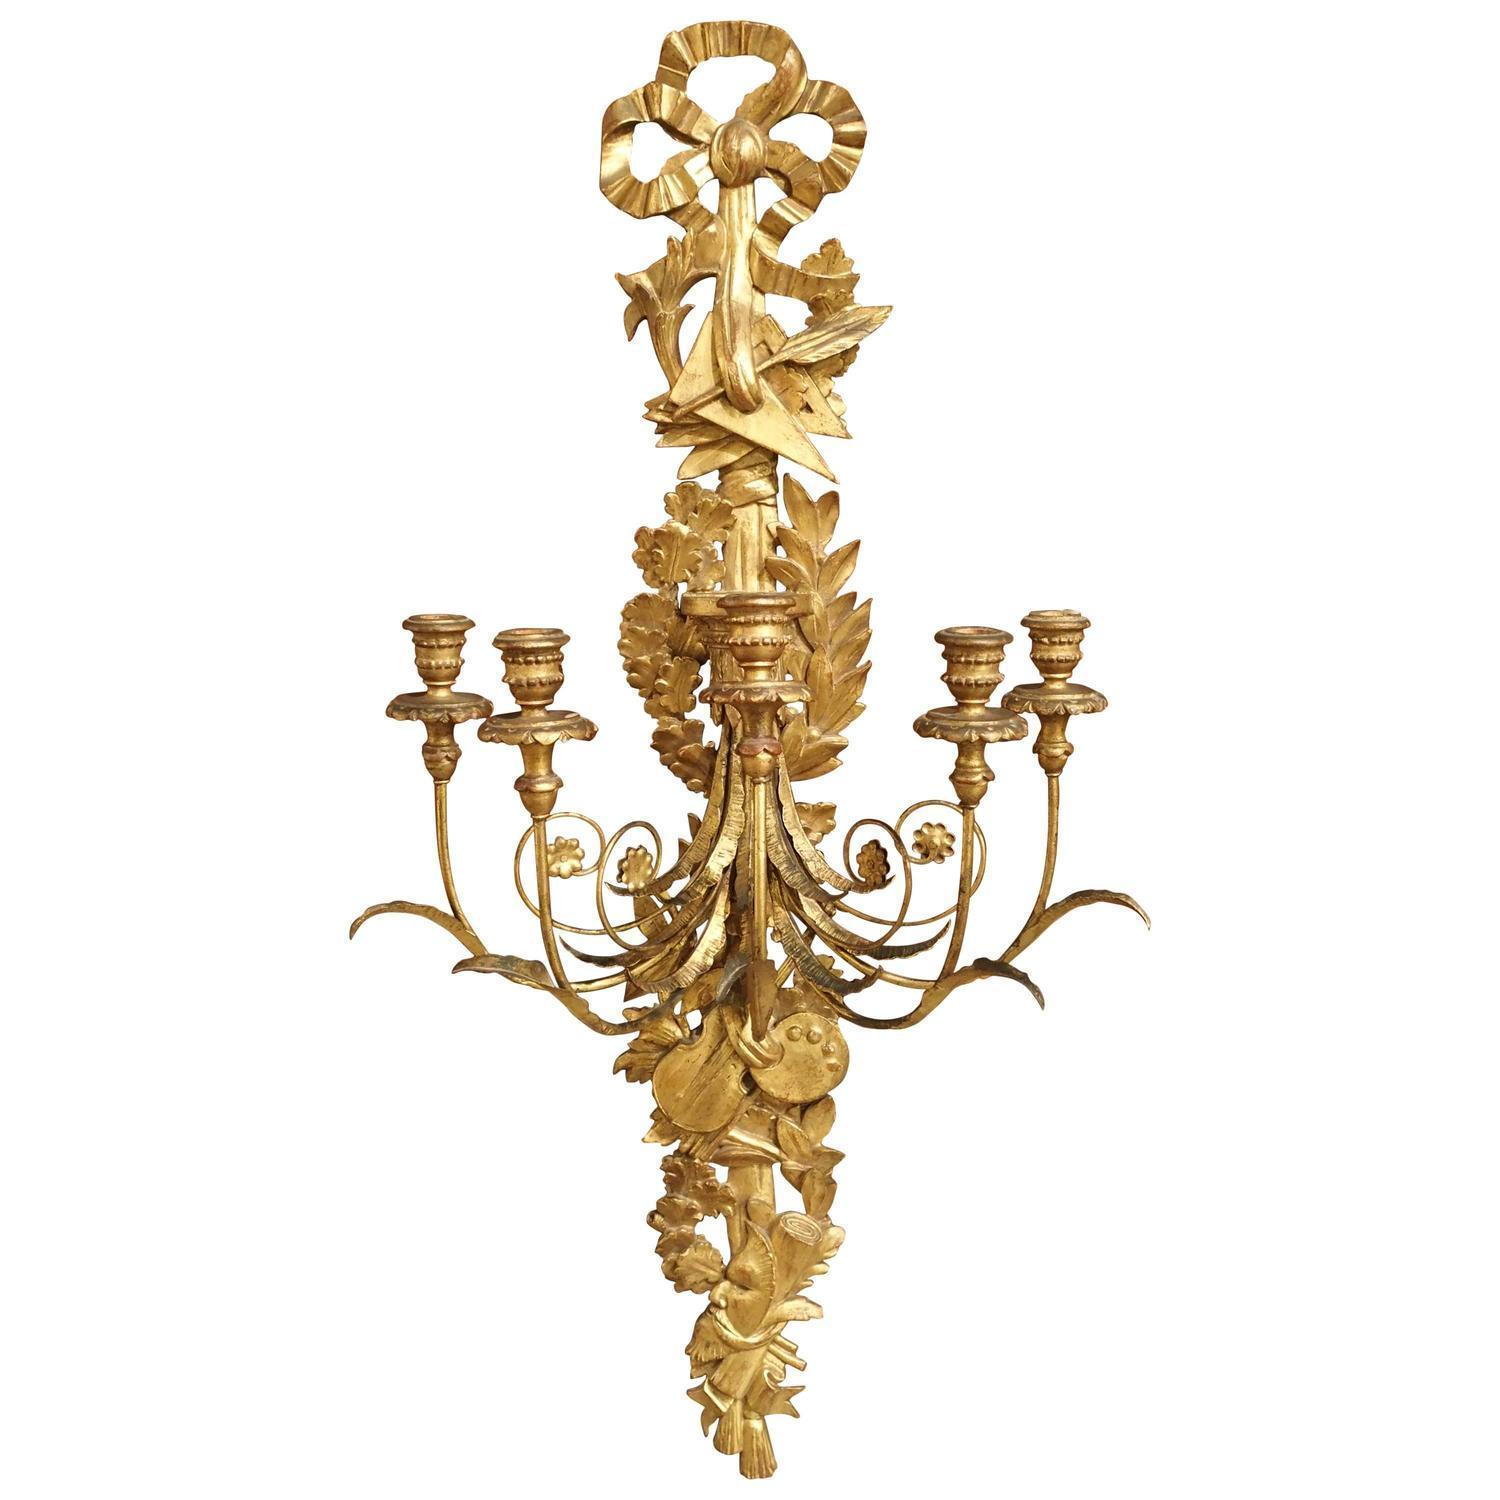 Italian Giltwood and Gilded Wrought Iron Five-Light Trophy Sconce